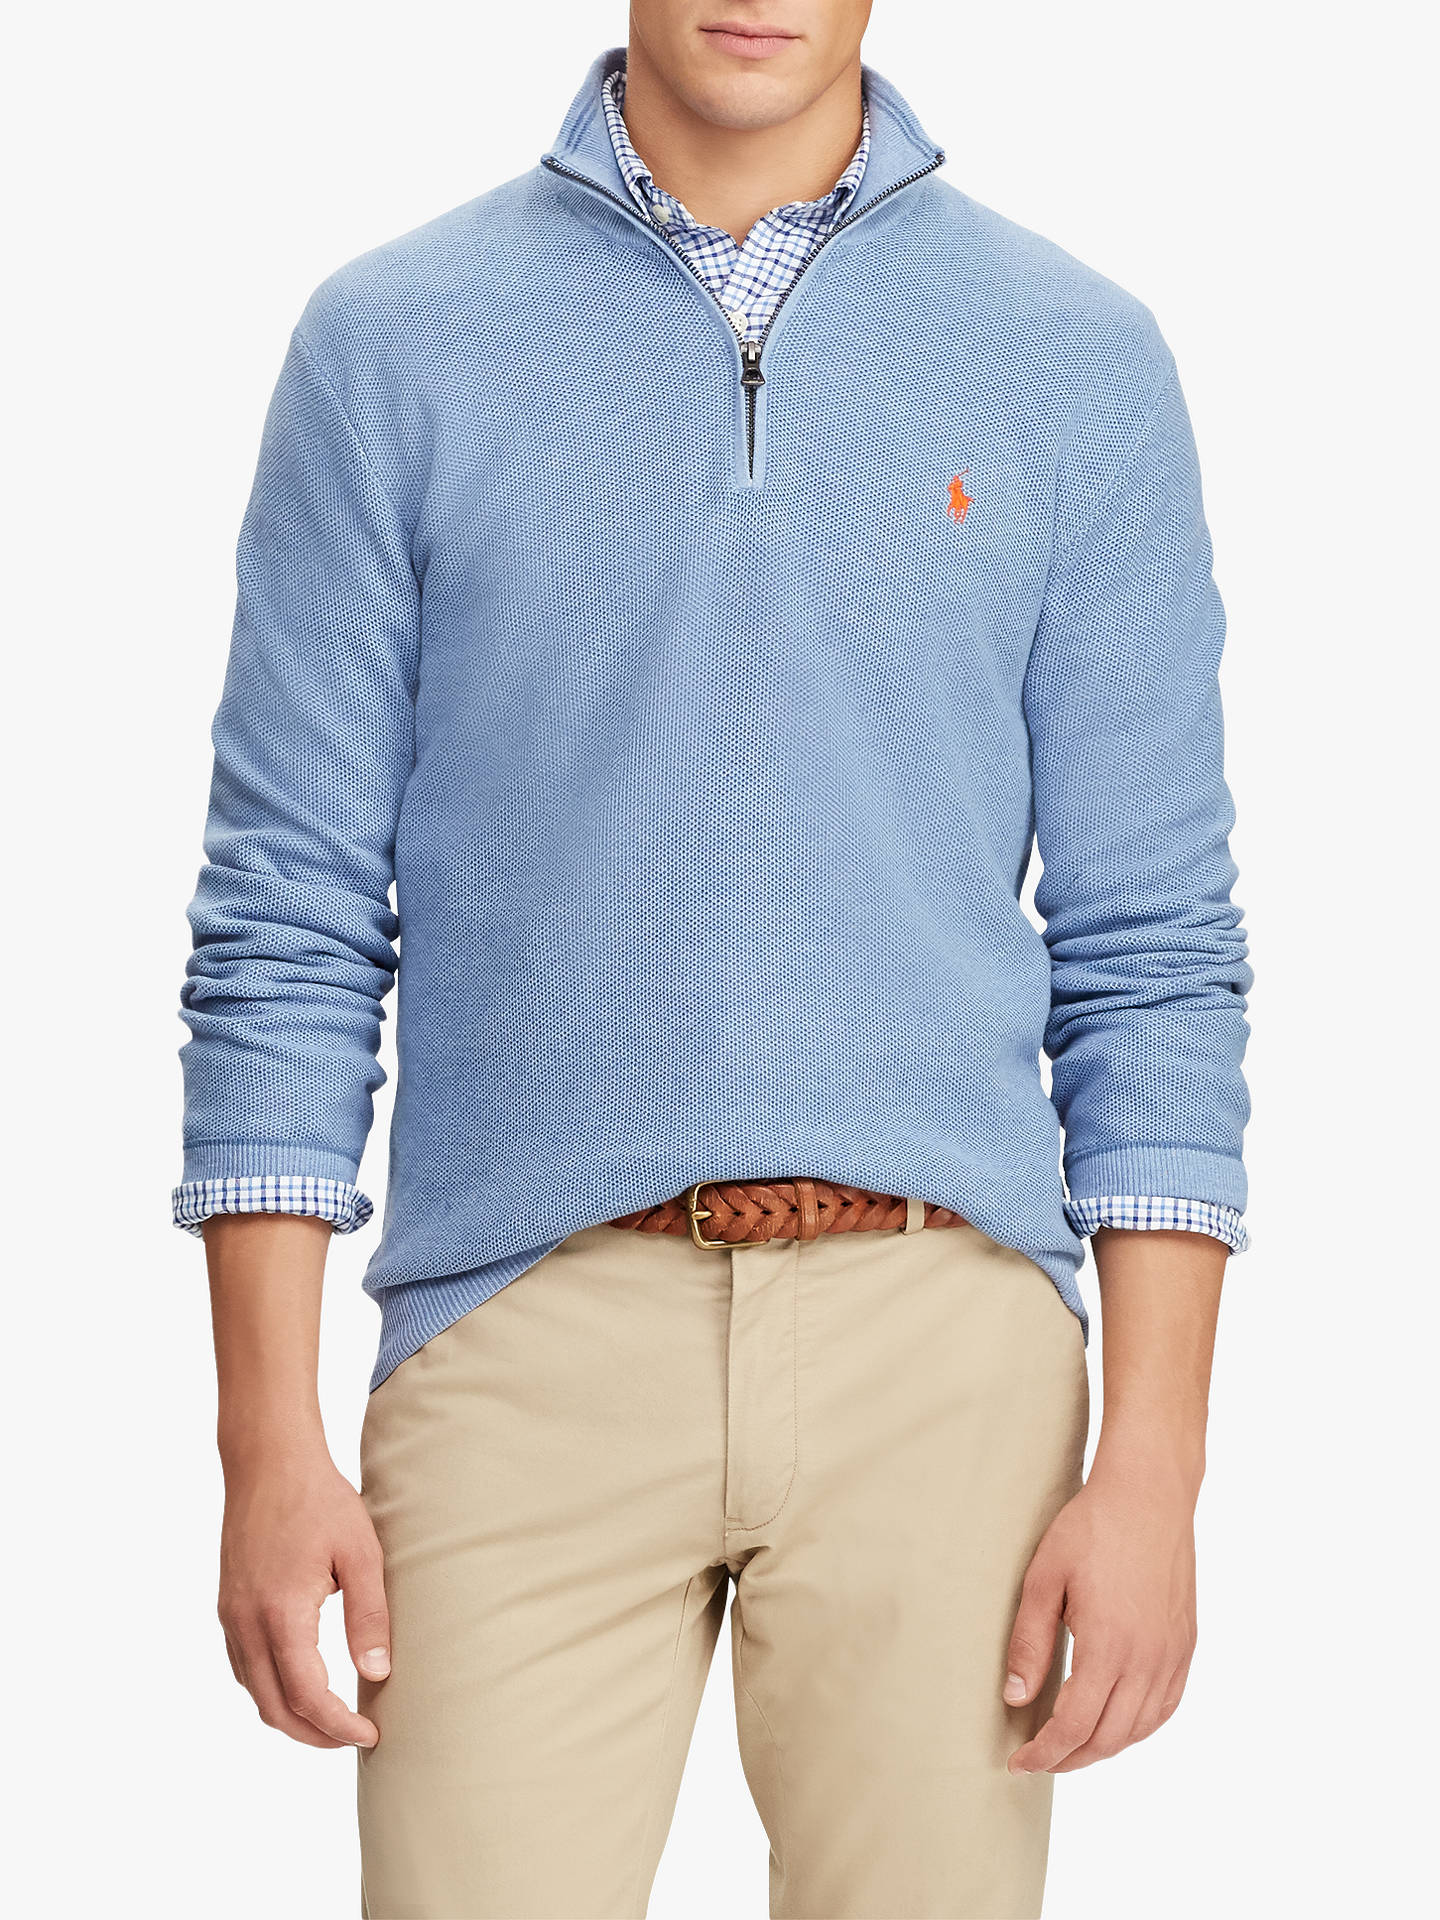 exclusive deals sold worldwide best wholesaler Polo Ralph Lauren Pima Cotton Half Zip Sweatshirt at John ...